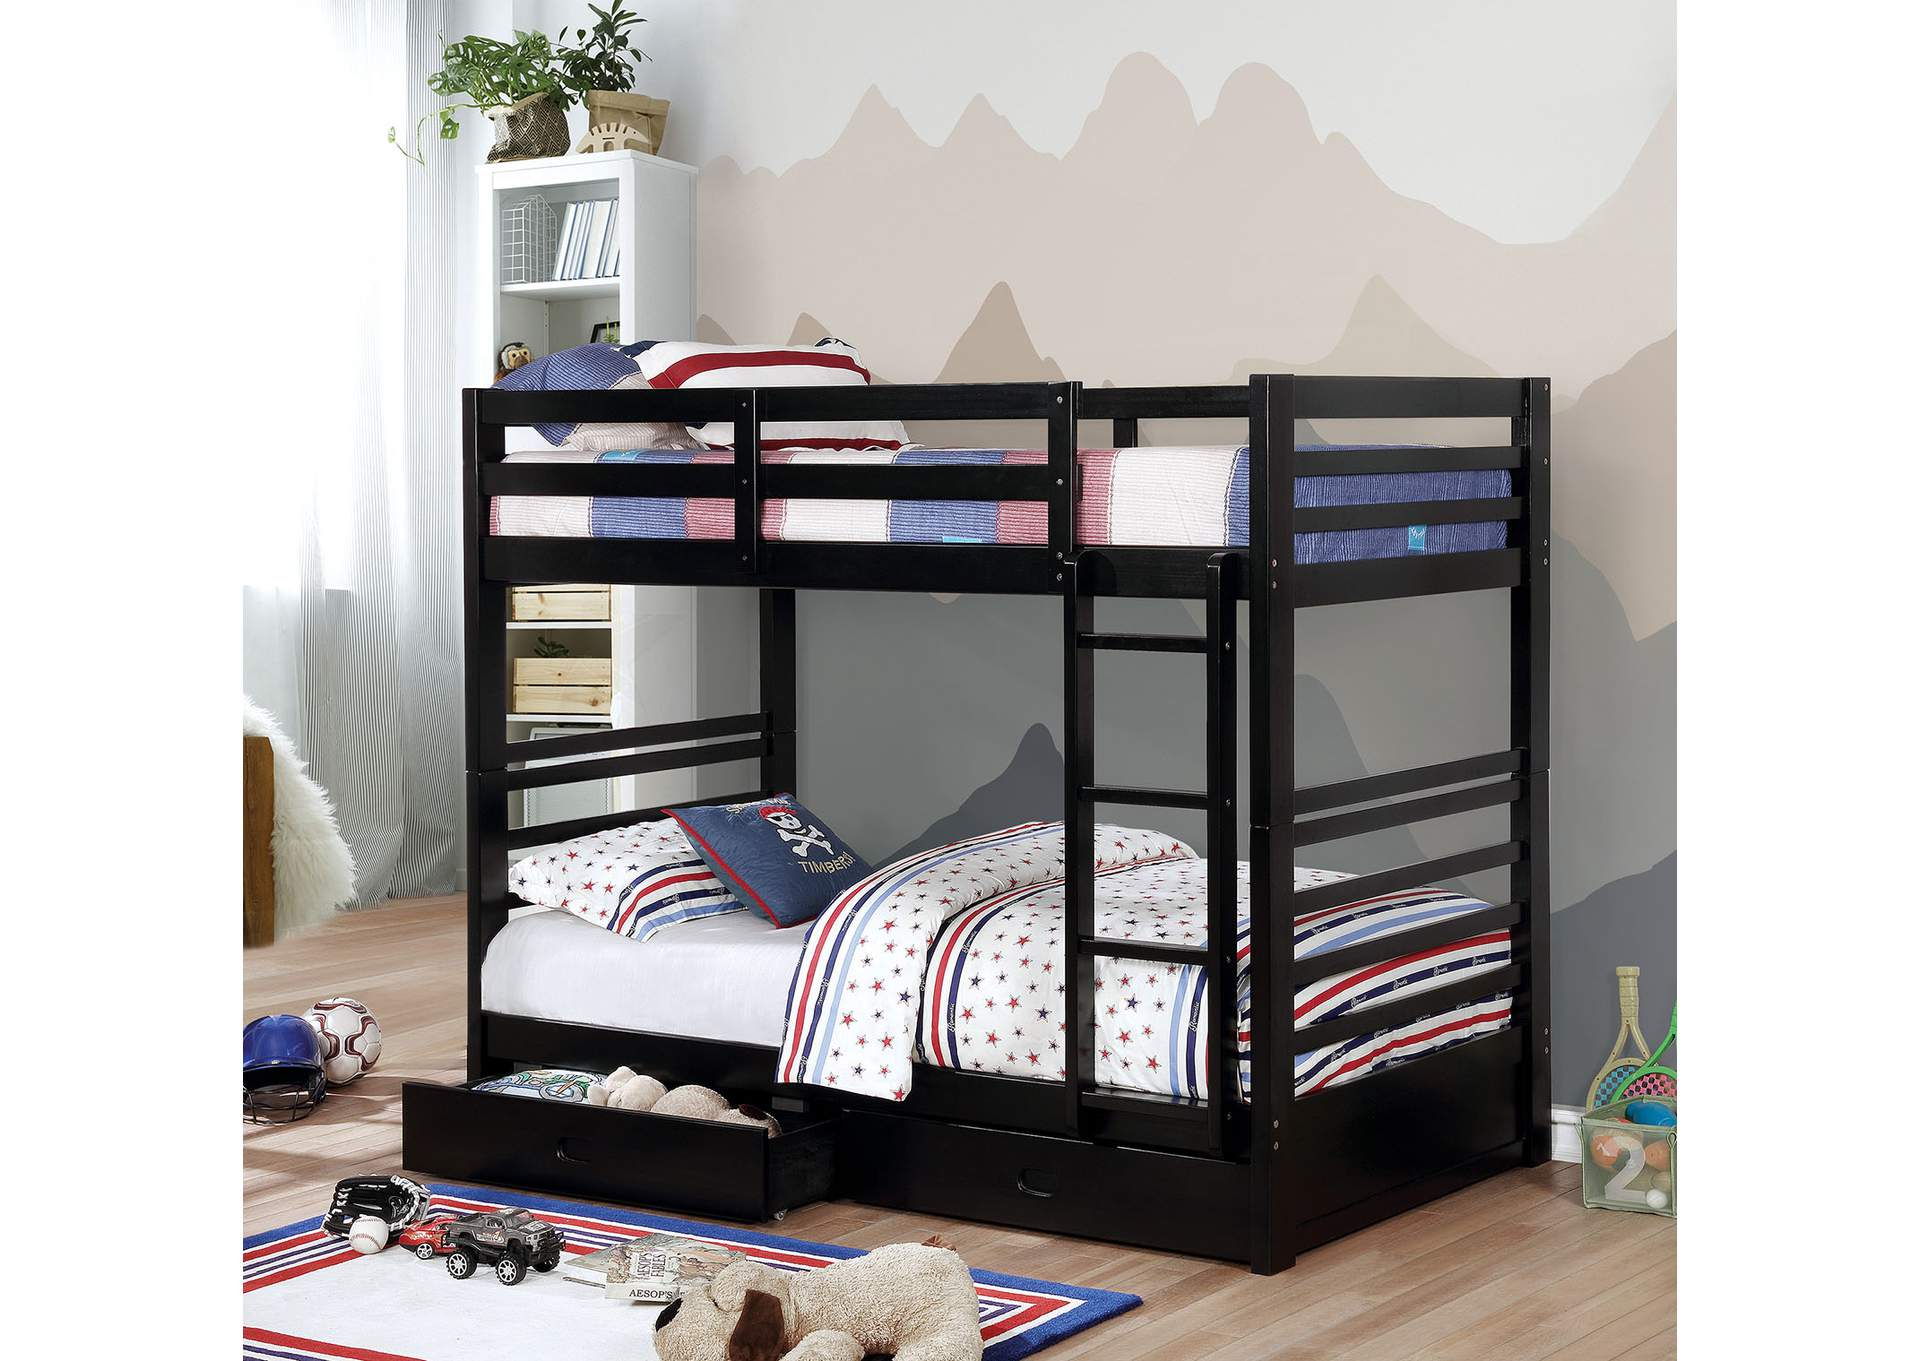 California IV Black Twin/Twin Bunk Bed,Furniture of America